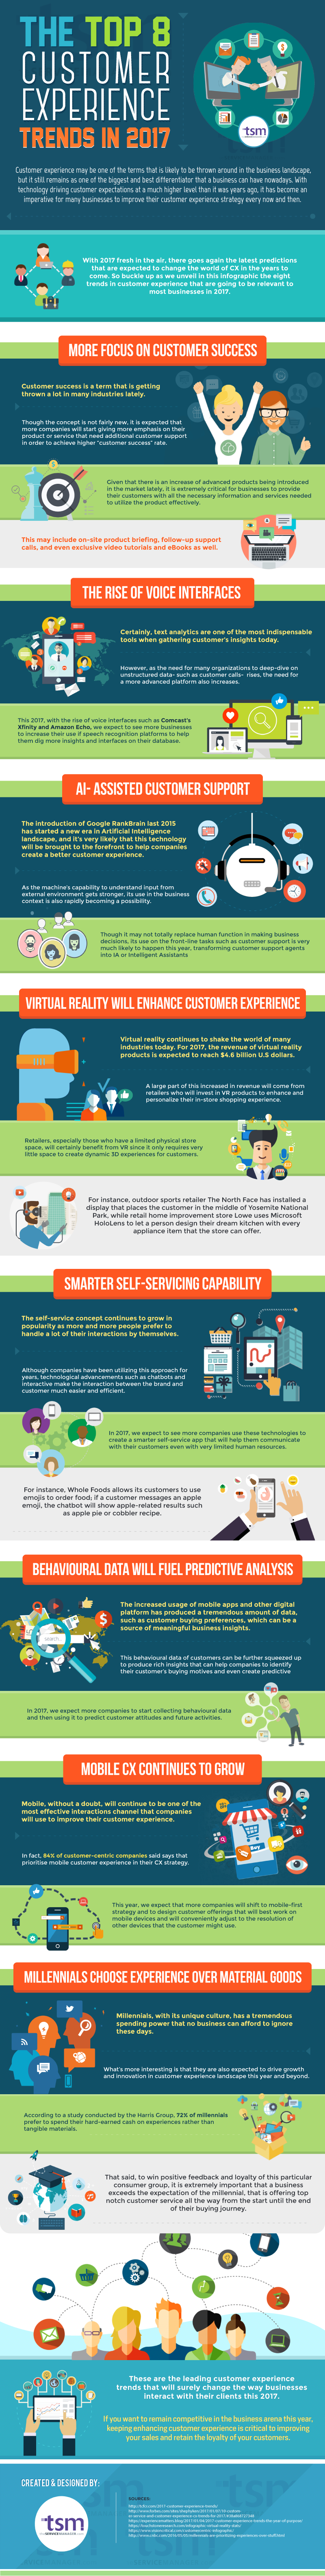 Top-8-Customer-Experience-Trends-in-2017-HD.png